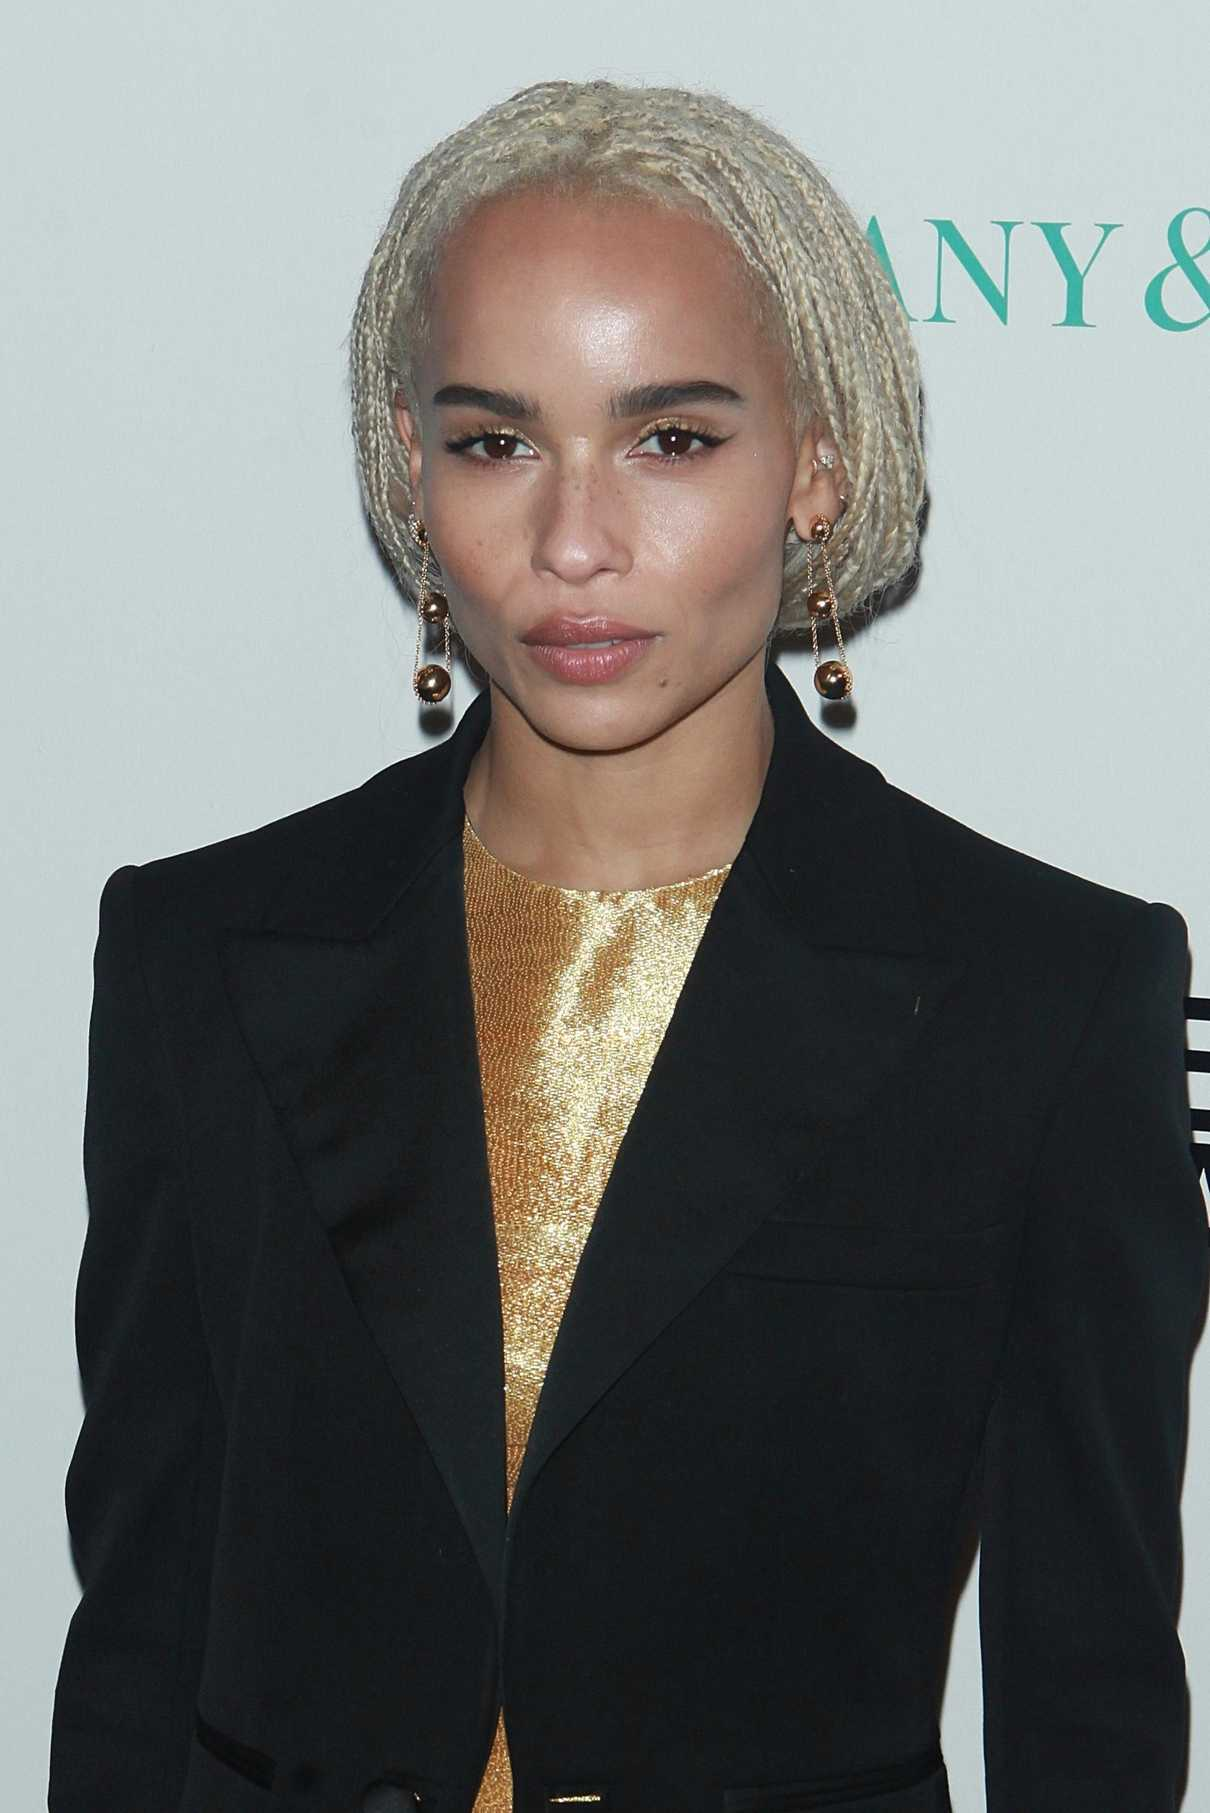 Zoe Kravitz at the 2017 Whitney Biennial Presented by Tiffany and Co in New York City 03/15/2017-5